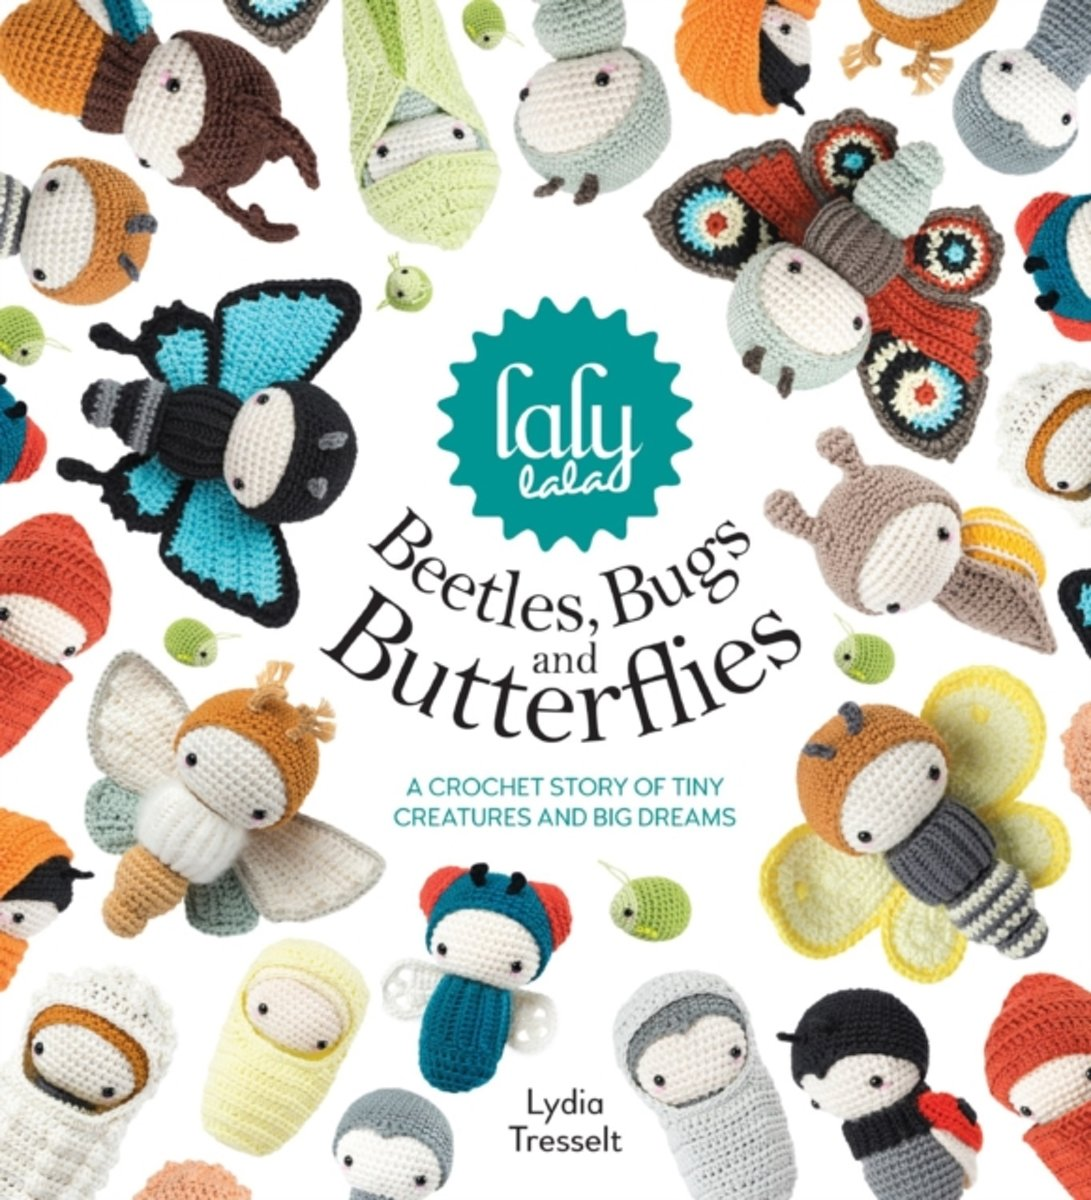 | lalylala's Beetles, Bugs and Butterflies, Lydia